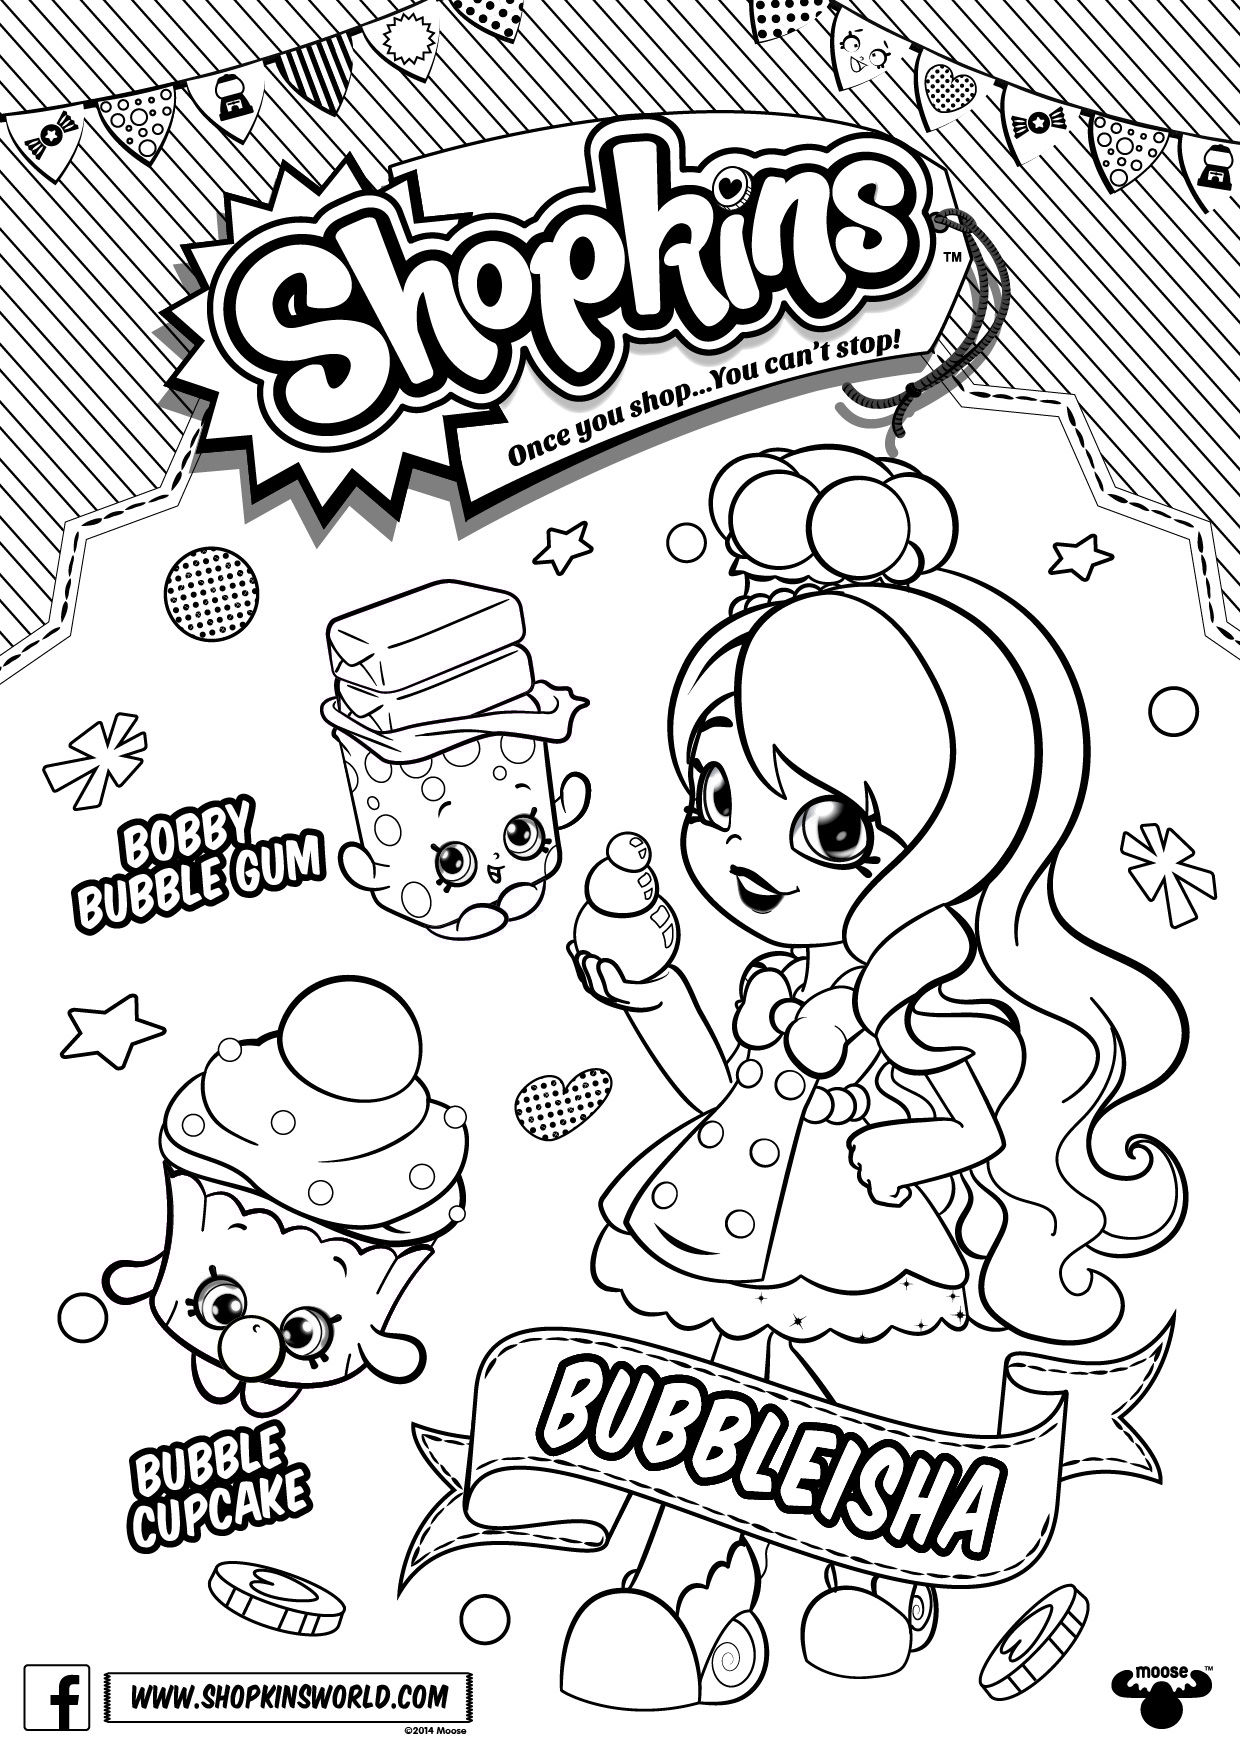 Shopkins Doll Chef Club Colour In Page Bubbleleisha